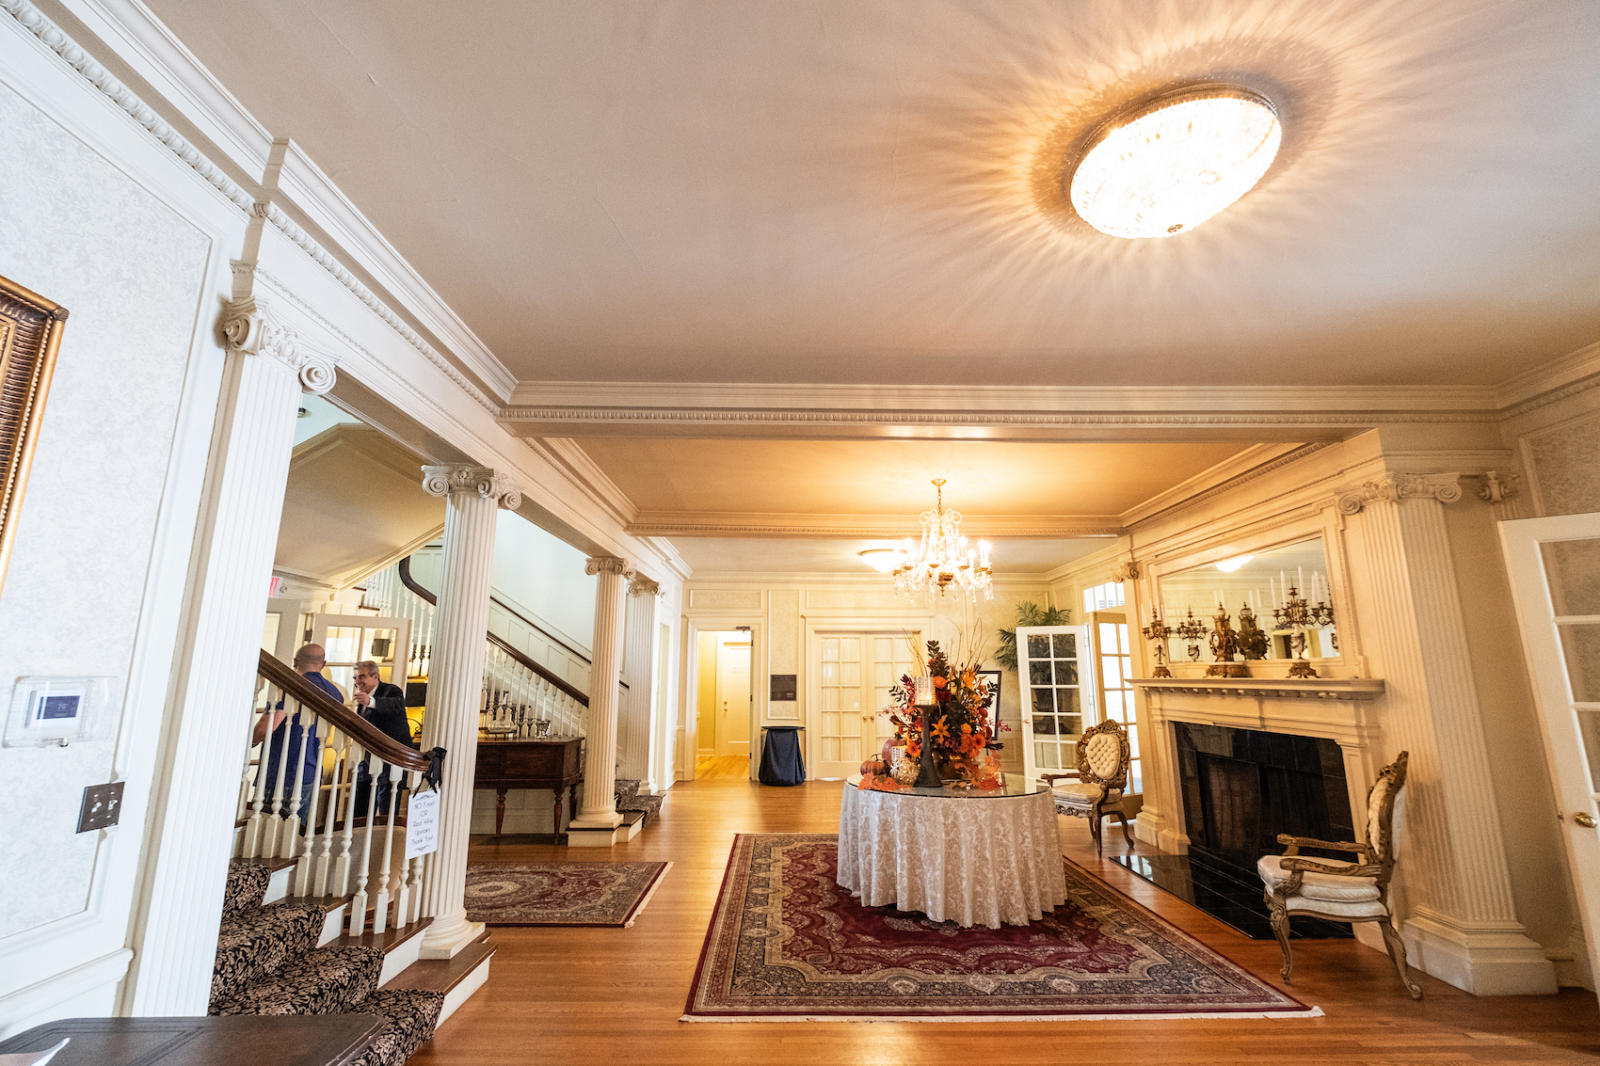 Interior of completed longview mansion historical preservation project's stairway and fireplace